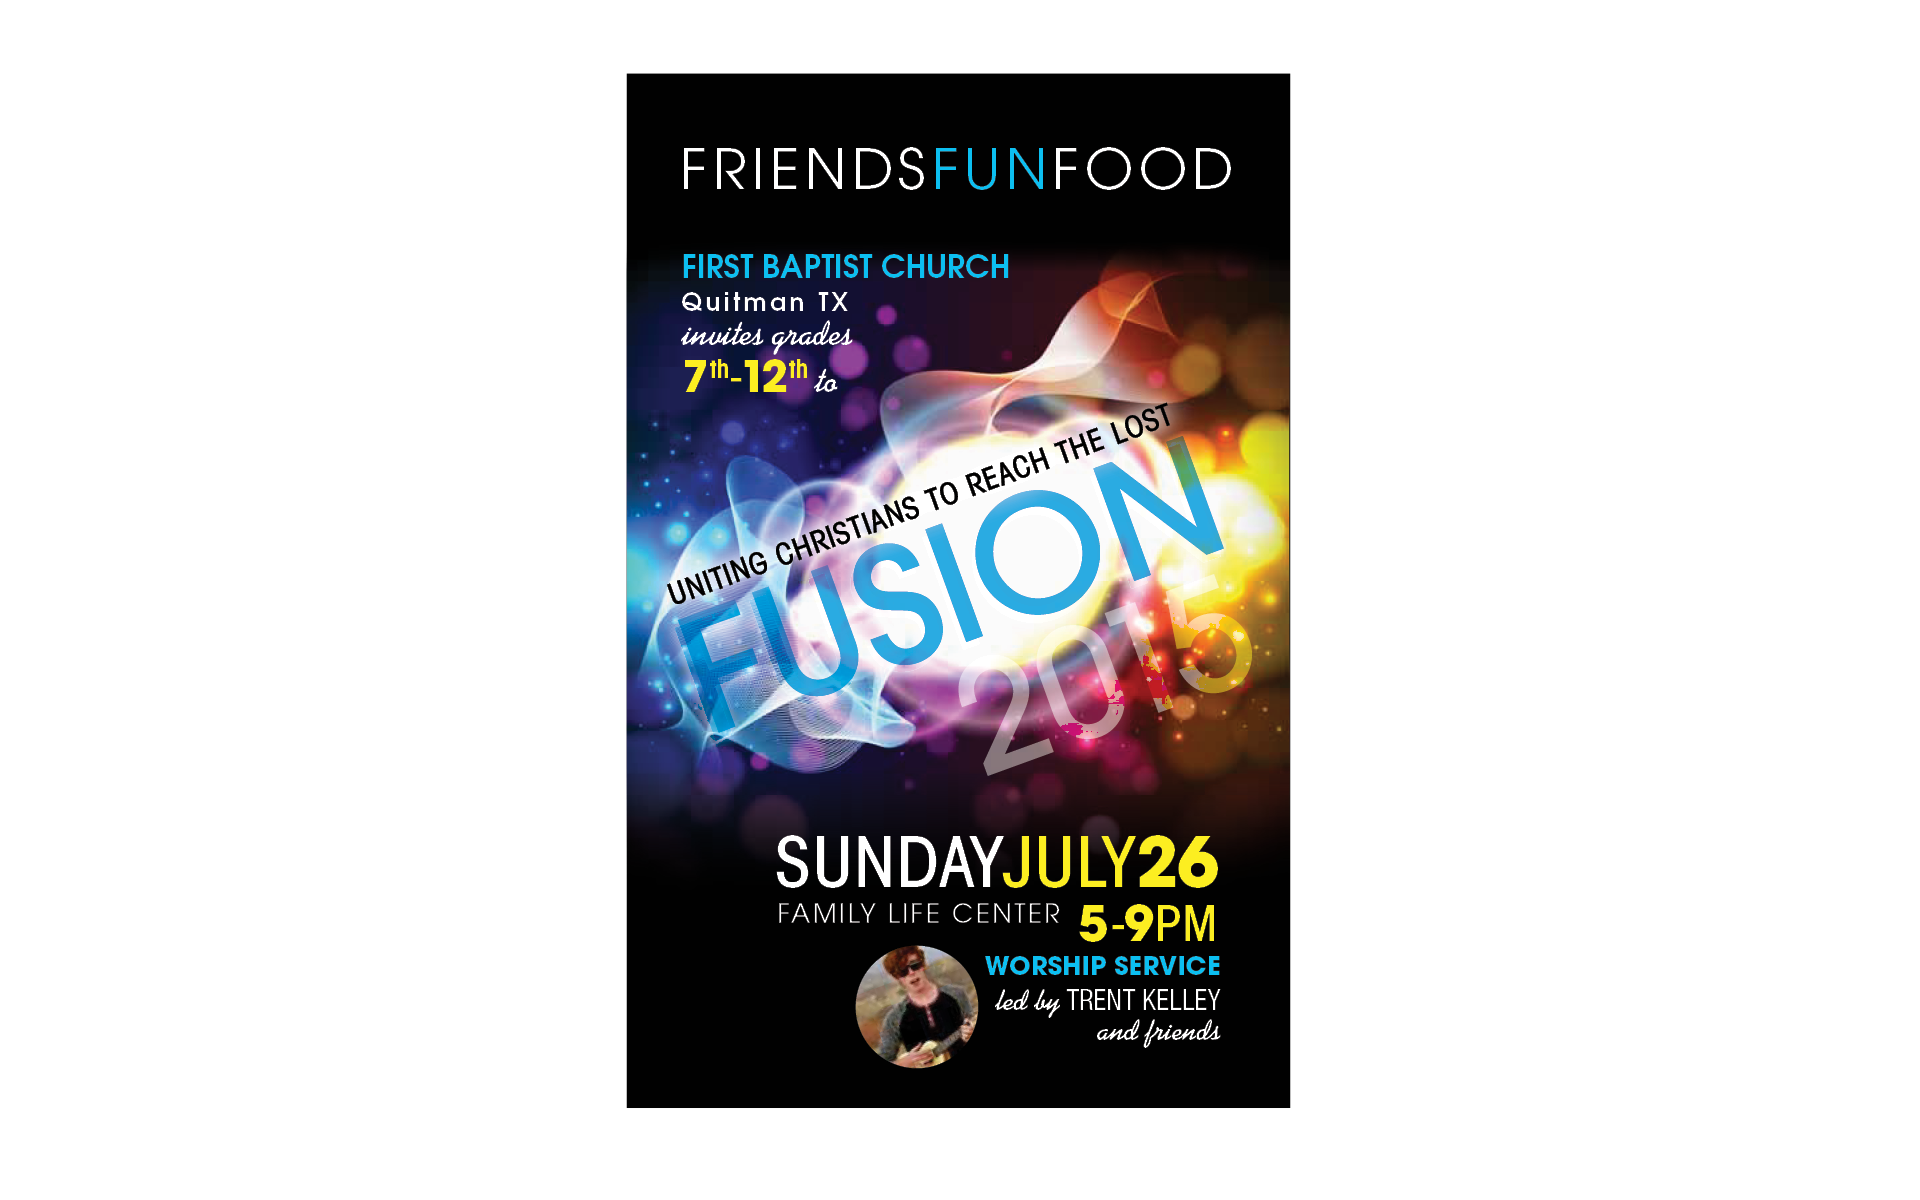 FUSION YOUTH EVENT fbcq.org